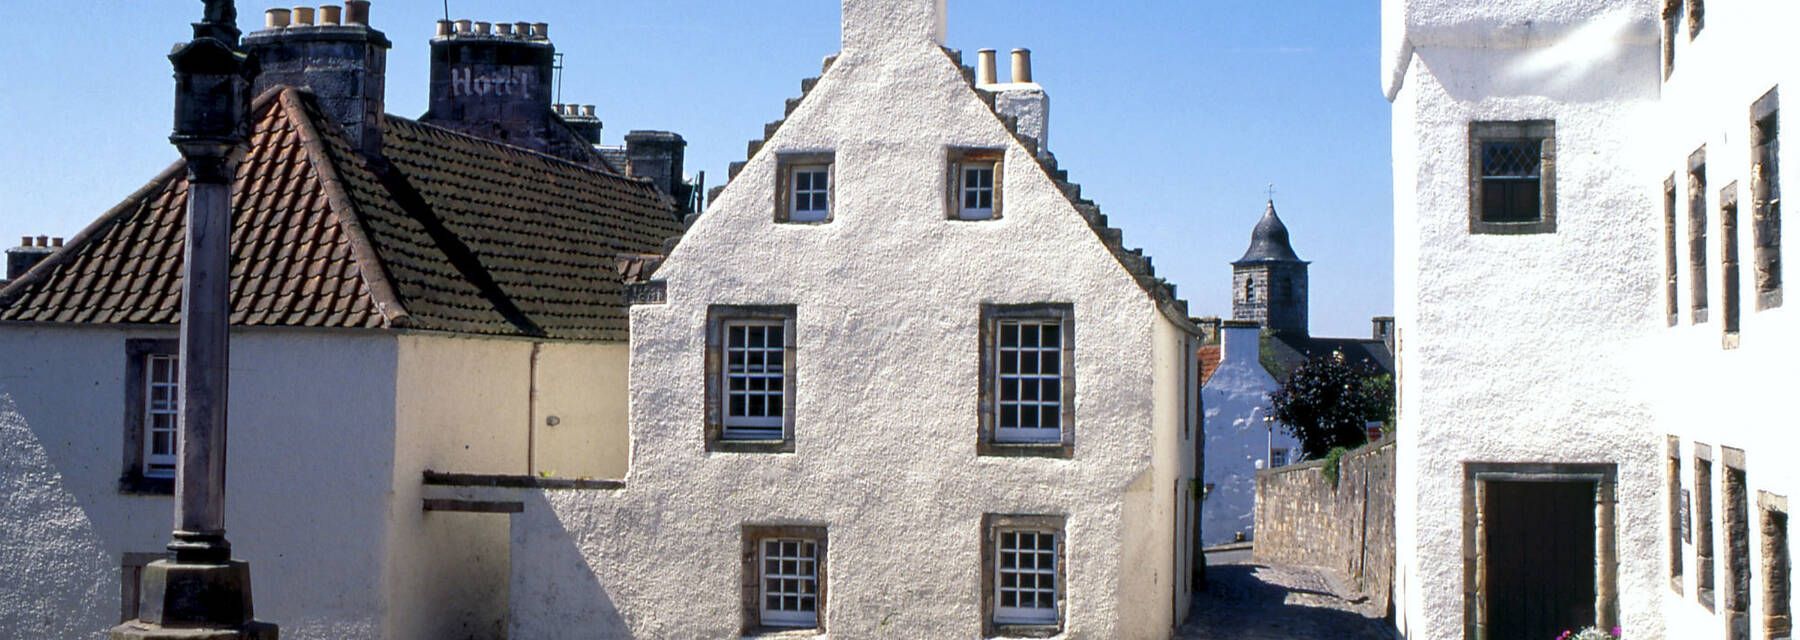 The mercat cross in the Royal Burgh of Culross